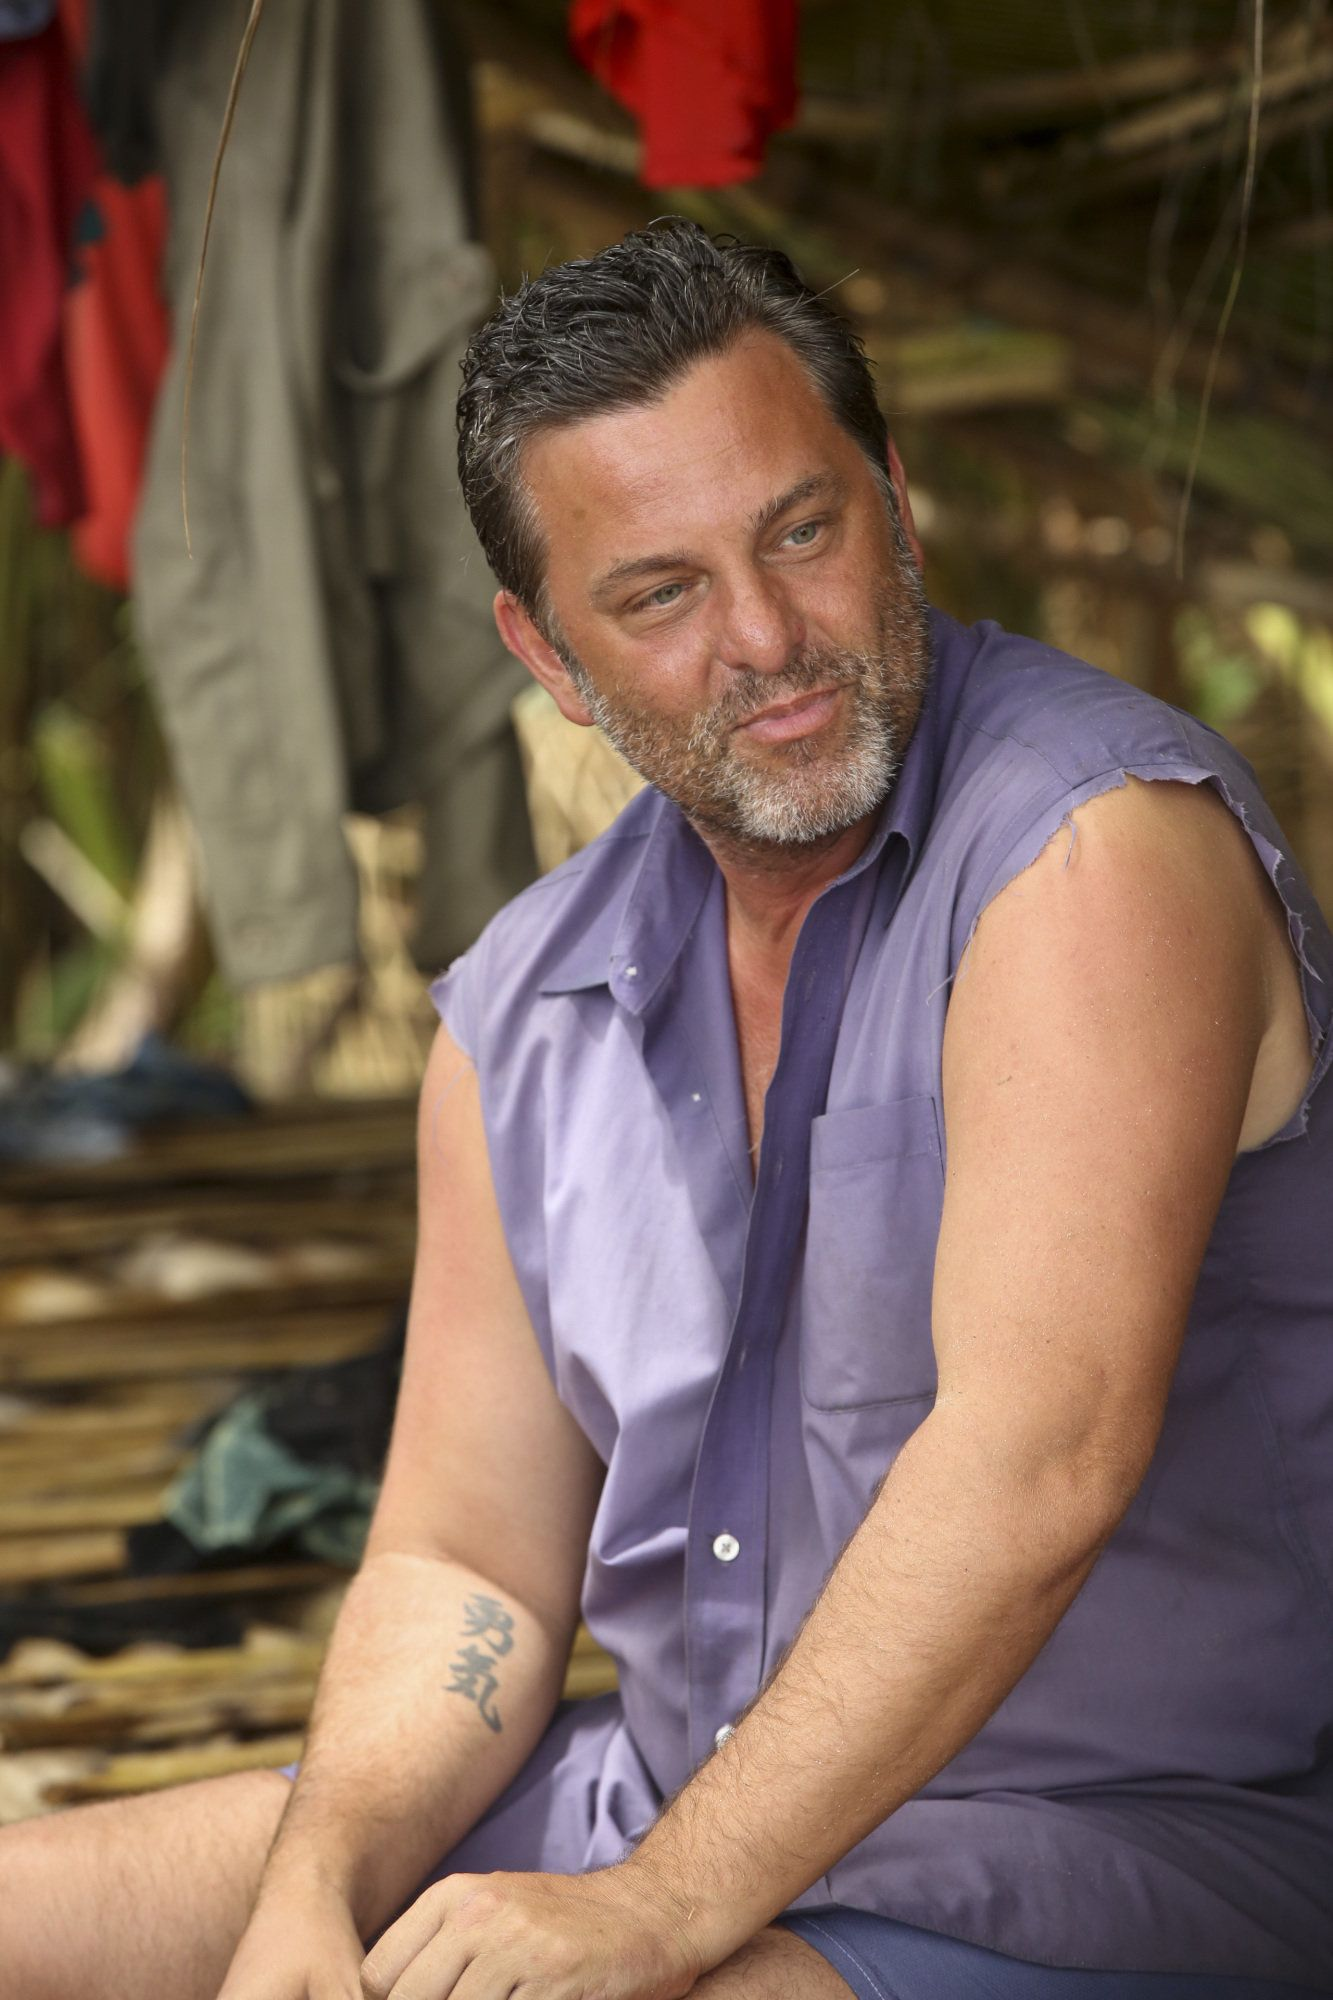 PREAH SIHANOUK CITY - JUNE 2: 'Survivor MacGyver' - Jeff Varner during the second episode of SURVIVOR, Wednesday, Sept. 30 (8:00-9:00 PM, ET/PT). The new season in Cambodia, themed 'Second Chance,' features 20 castaways from past editions who were voted for by fans to have another shot at being named 'Sole Survivor.' (Photo by Monty Brinton/CBS via Getty Images)